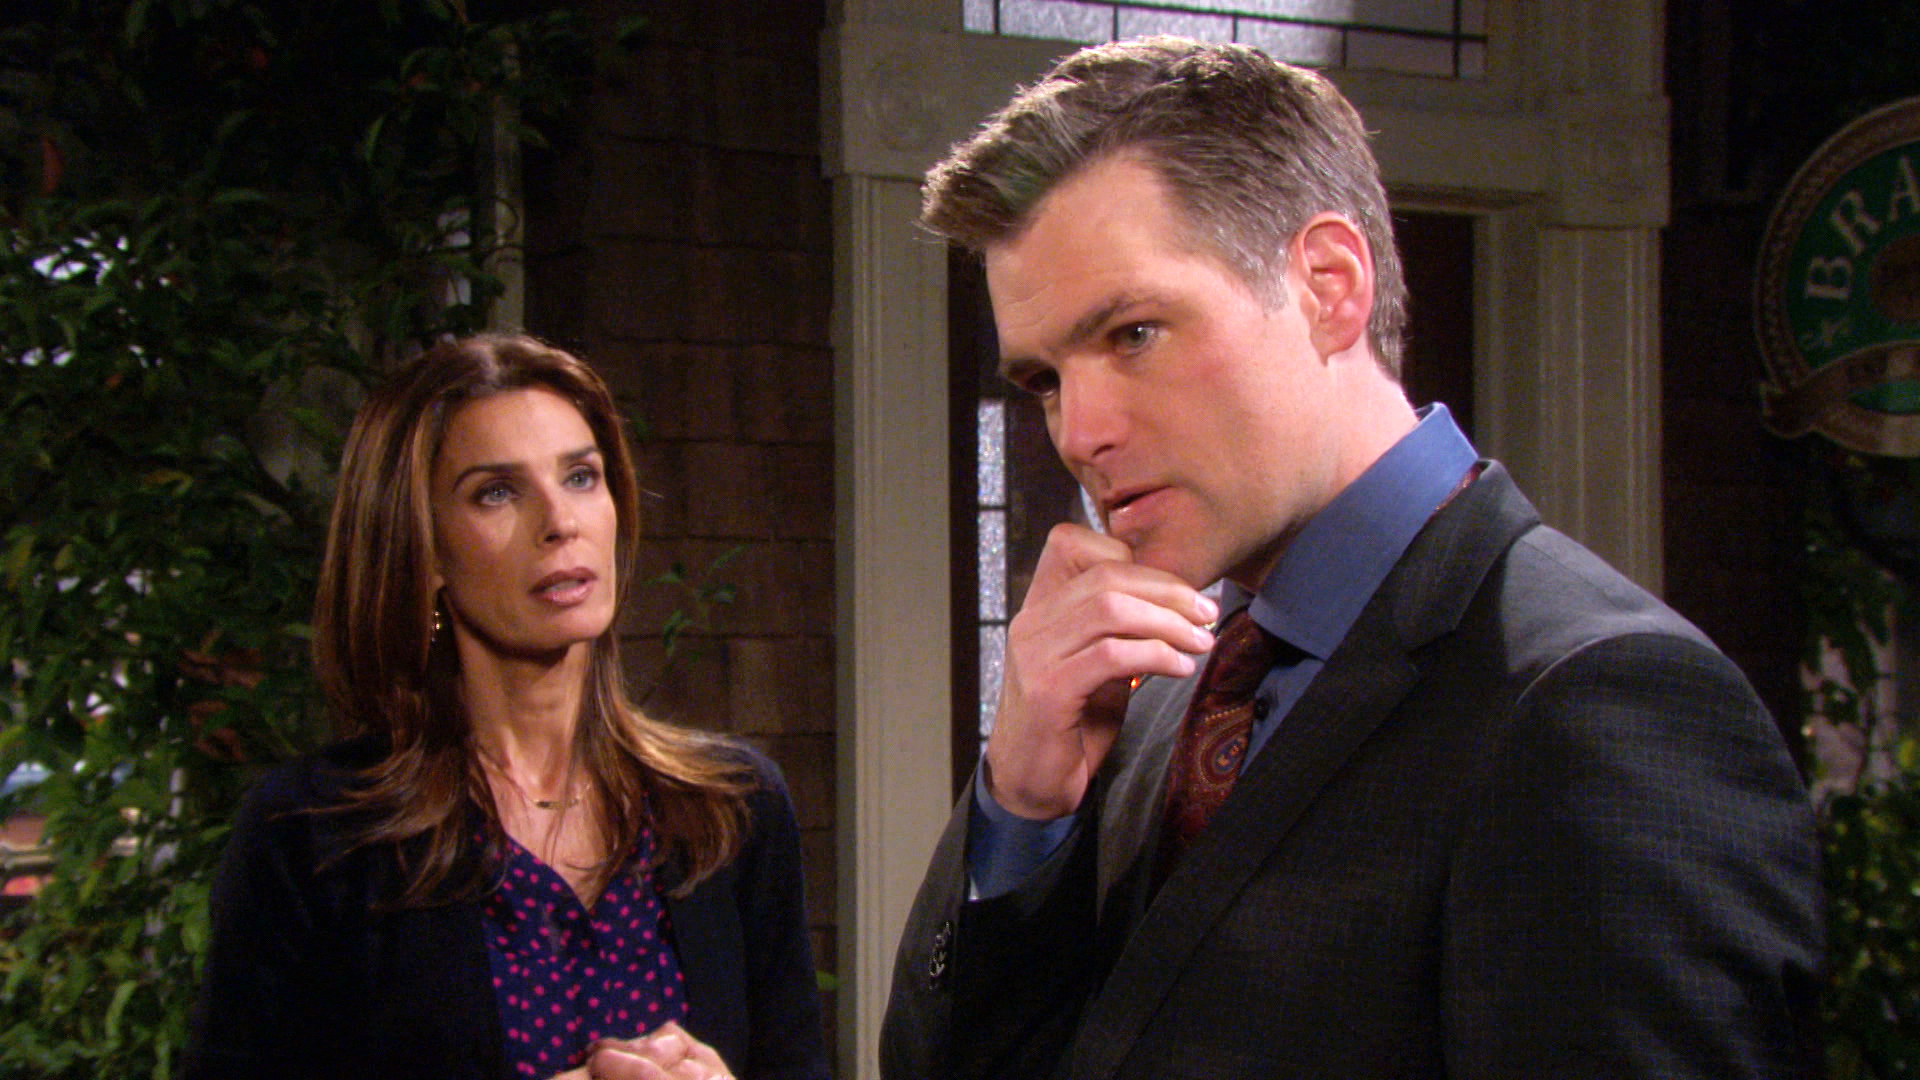 Aiden confronts Hope over what she said about him to Kayla.